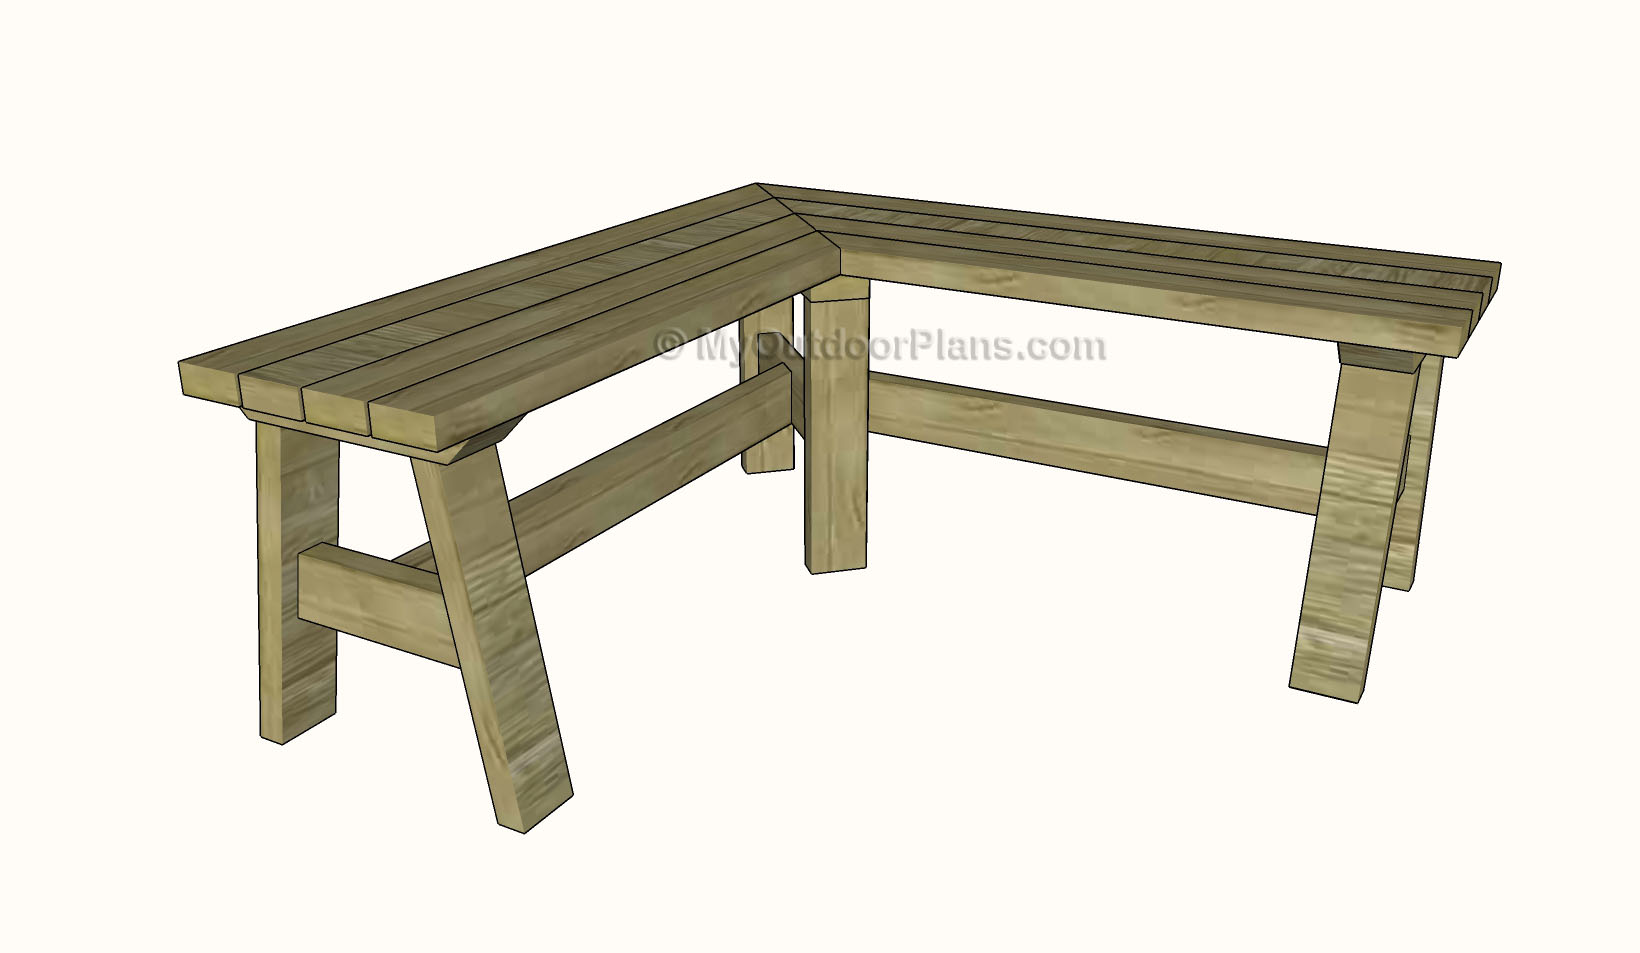 Corner Bench Plans | MyOutdoorPlans | Free Woodworking Plans and ...